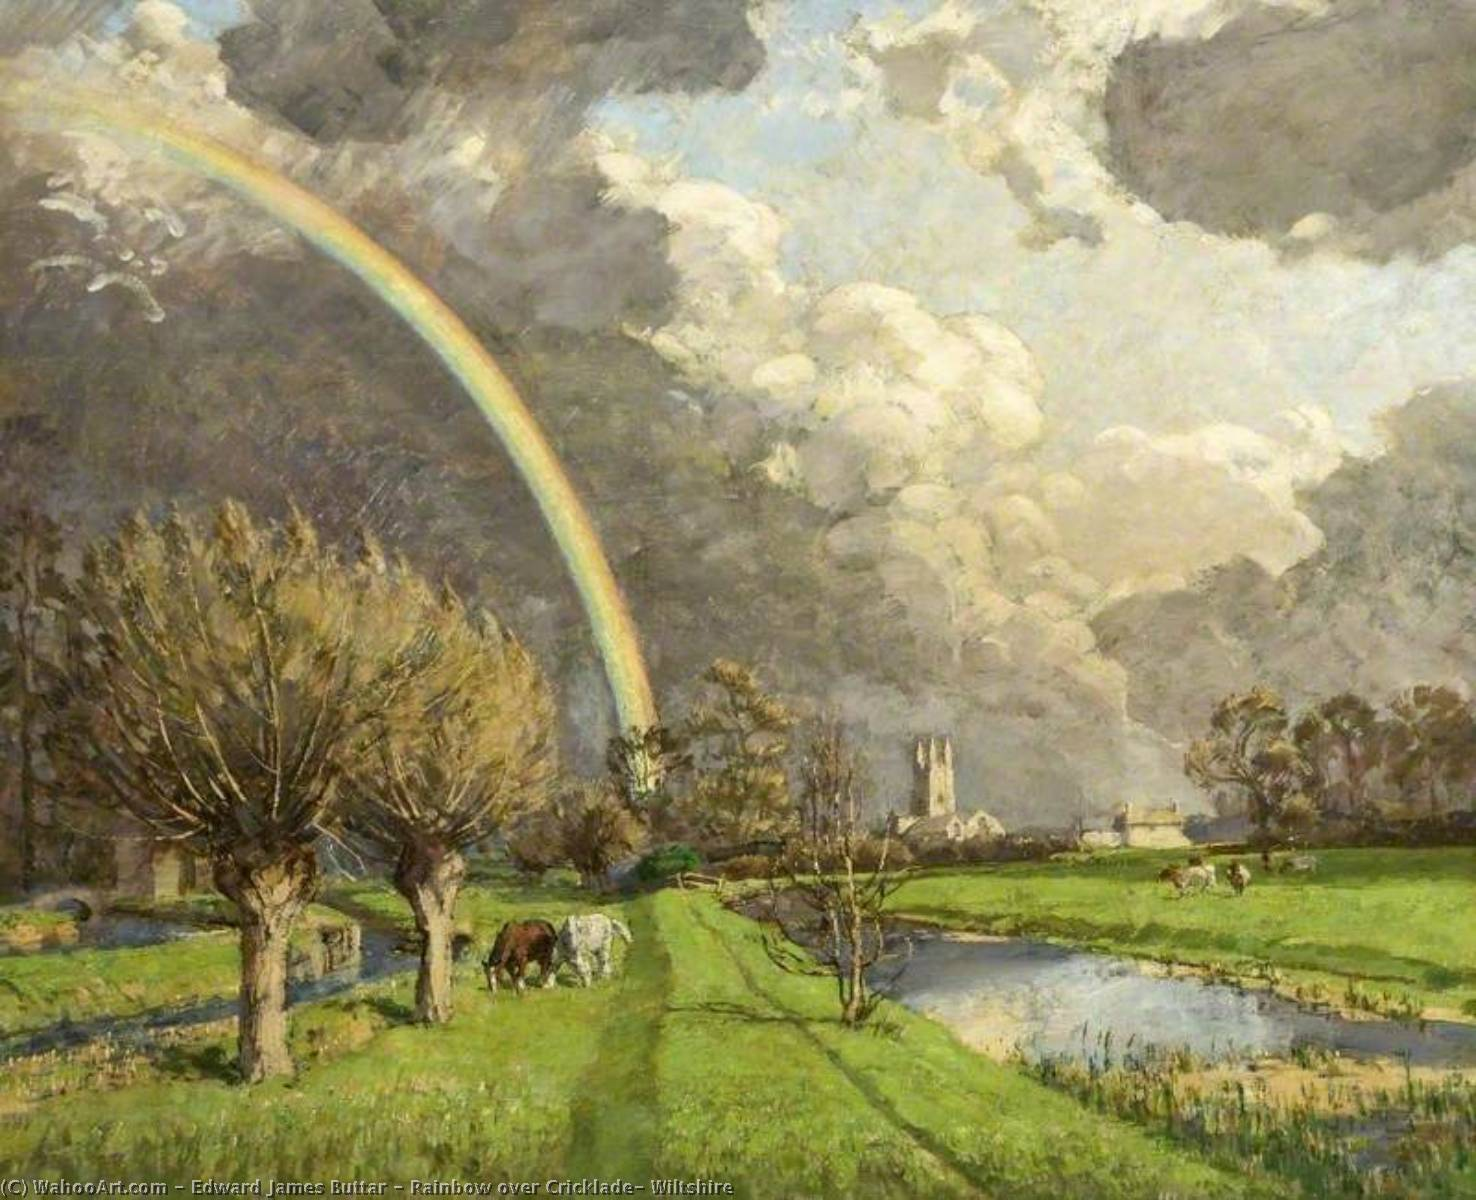 Rainbow over Cricklade, Wiltshire, 1940 by Edward James Buttar | Reproductions Edward James Buttar | WahooArt.com